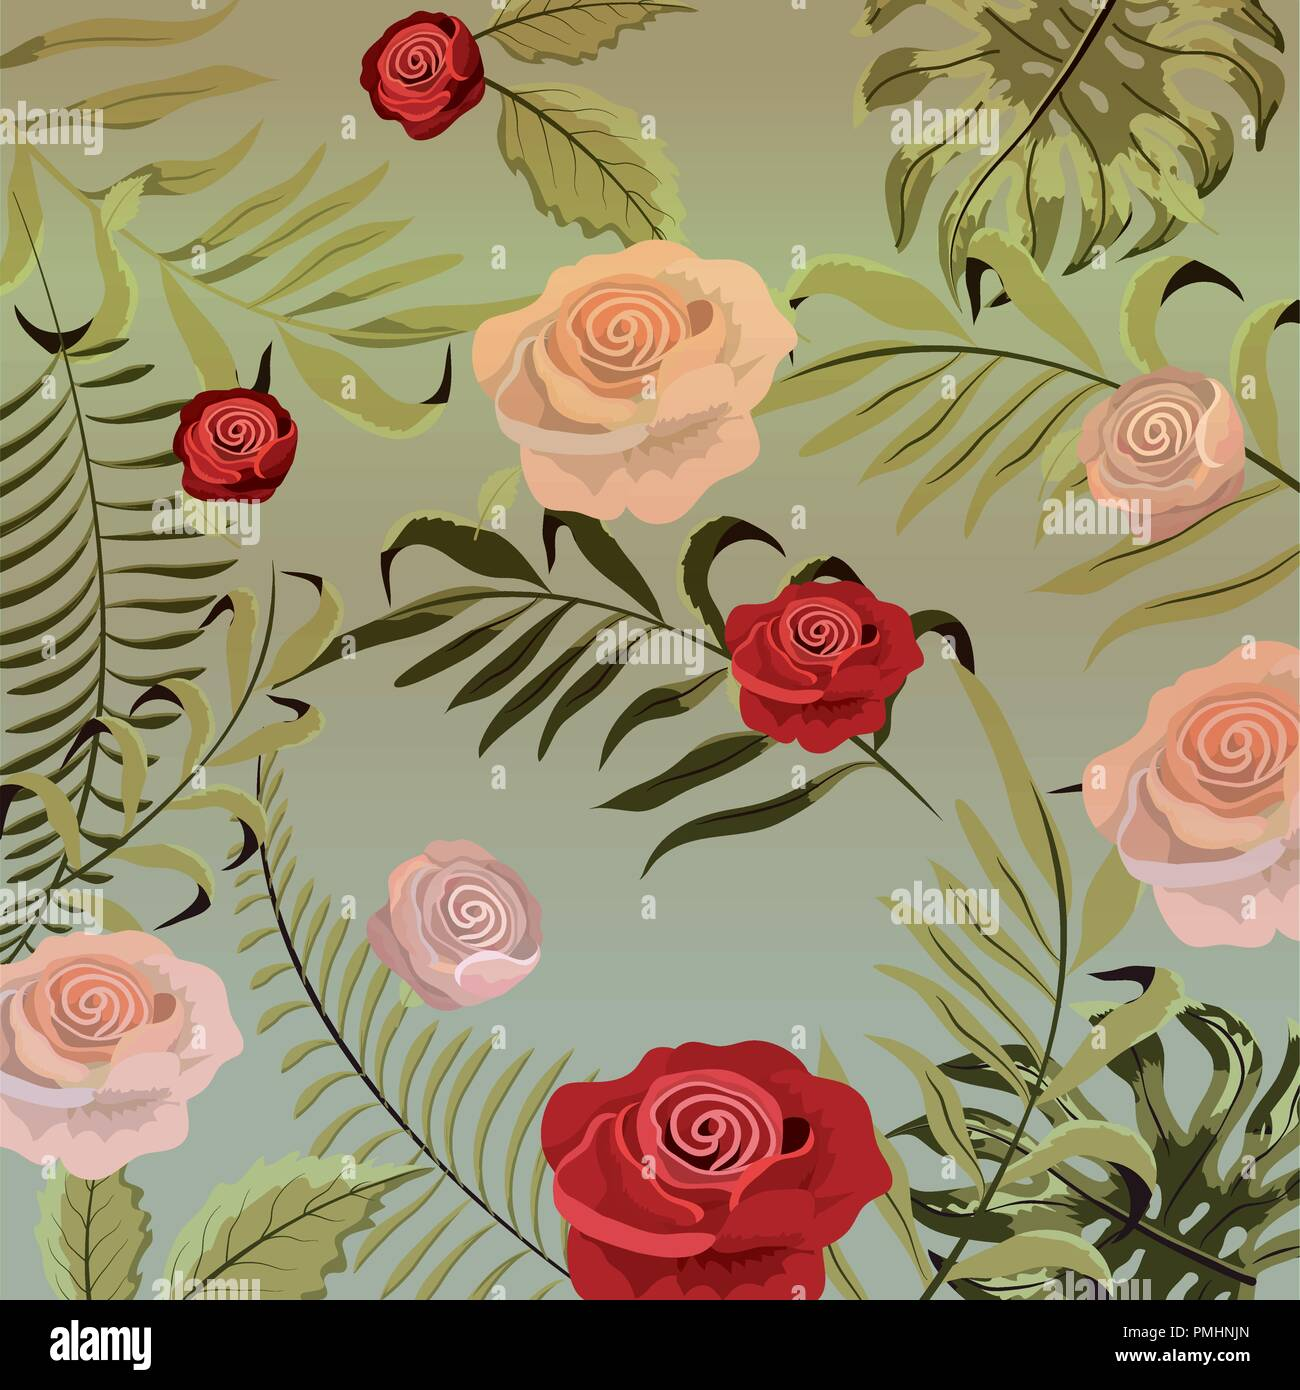 Vintage Floral Background Stock Vector Art Illustration Vector